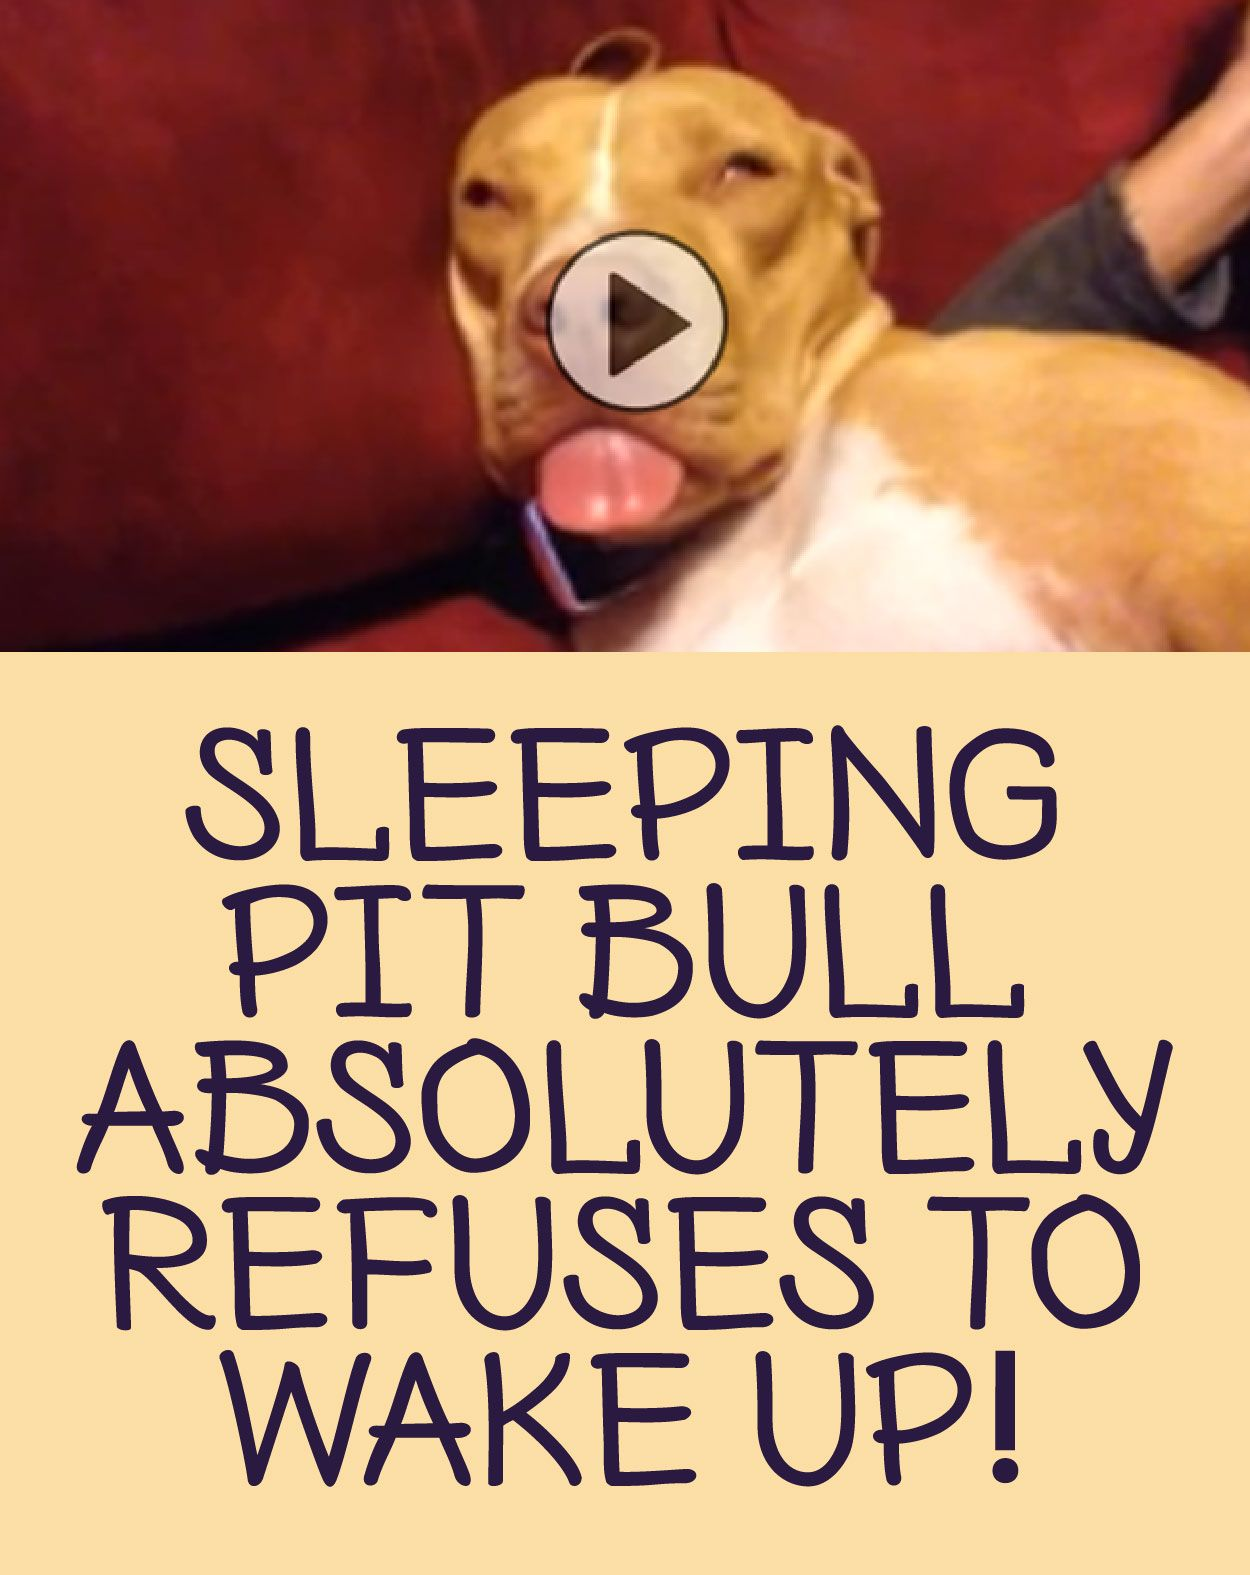 Sleeping Pit Bull absolutely refuses to wake up! :)